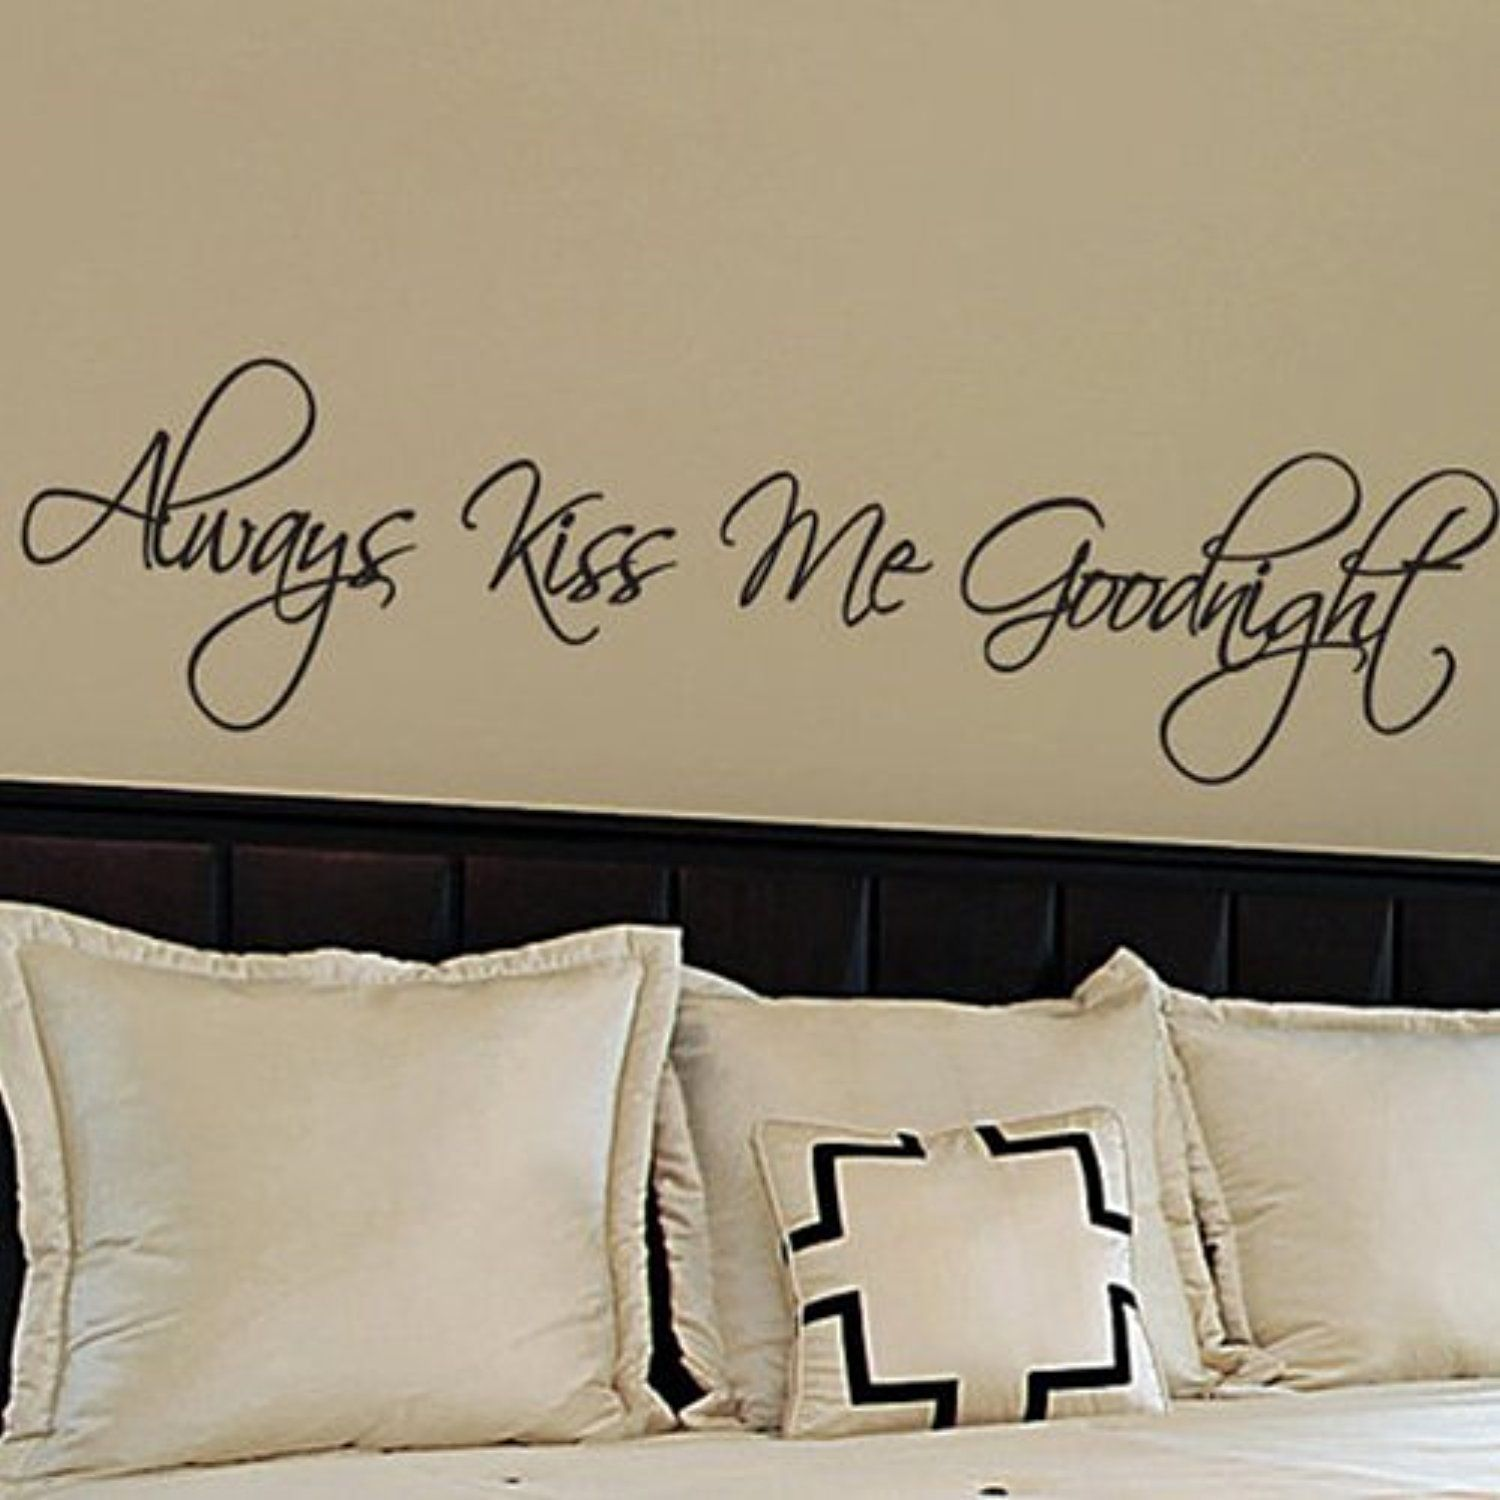 Always Kiss Me Goodnight - Wall Quotes Stickers Vinyl Wall Decals ...